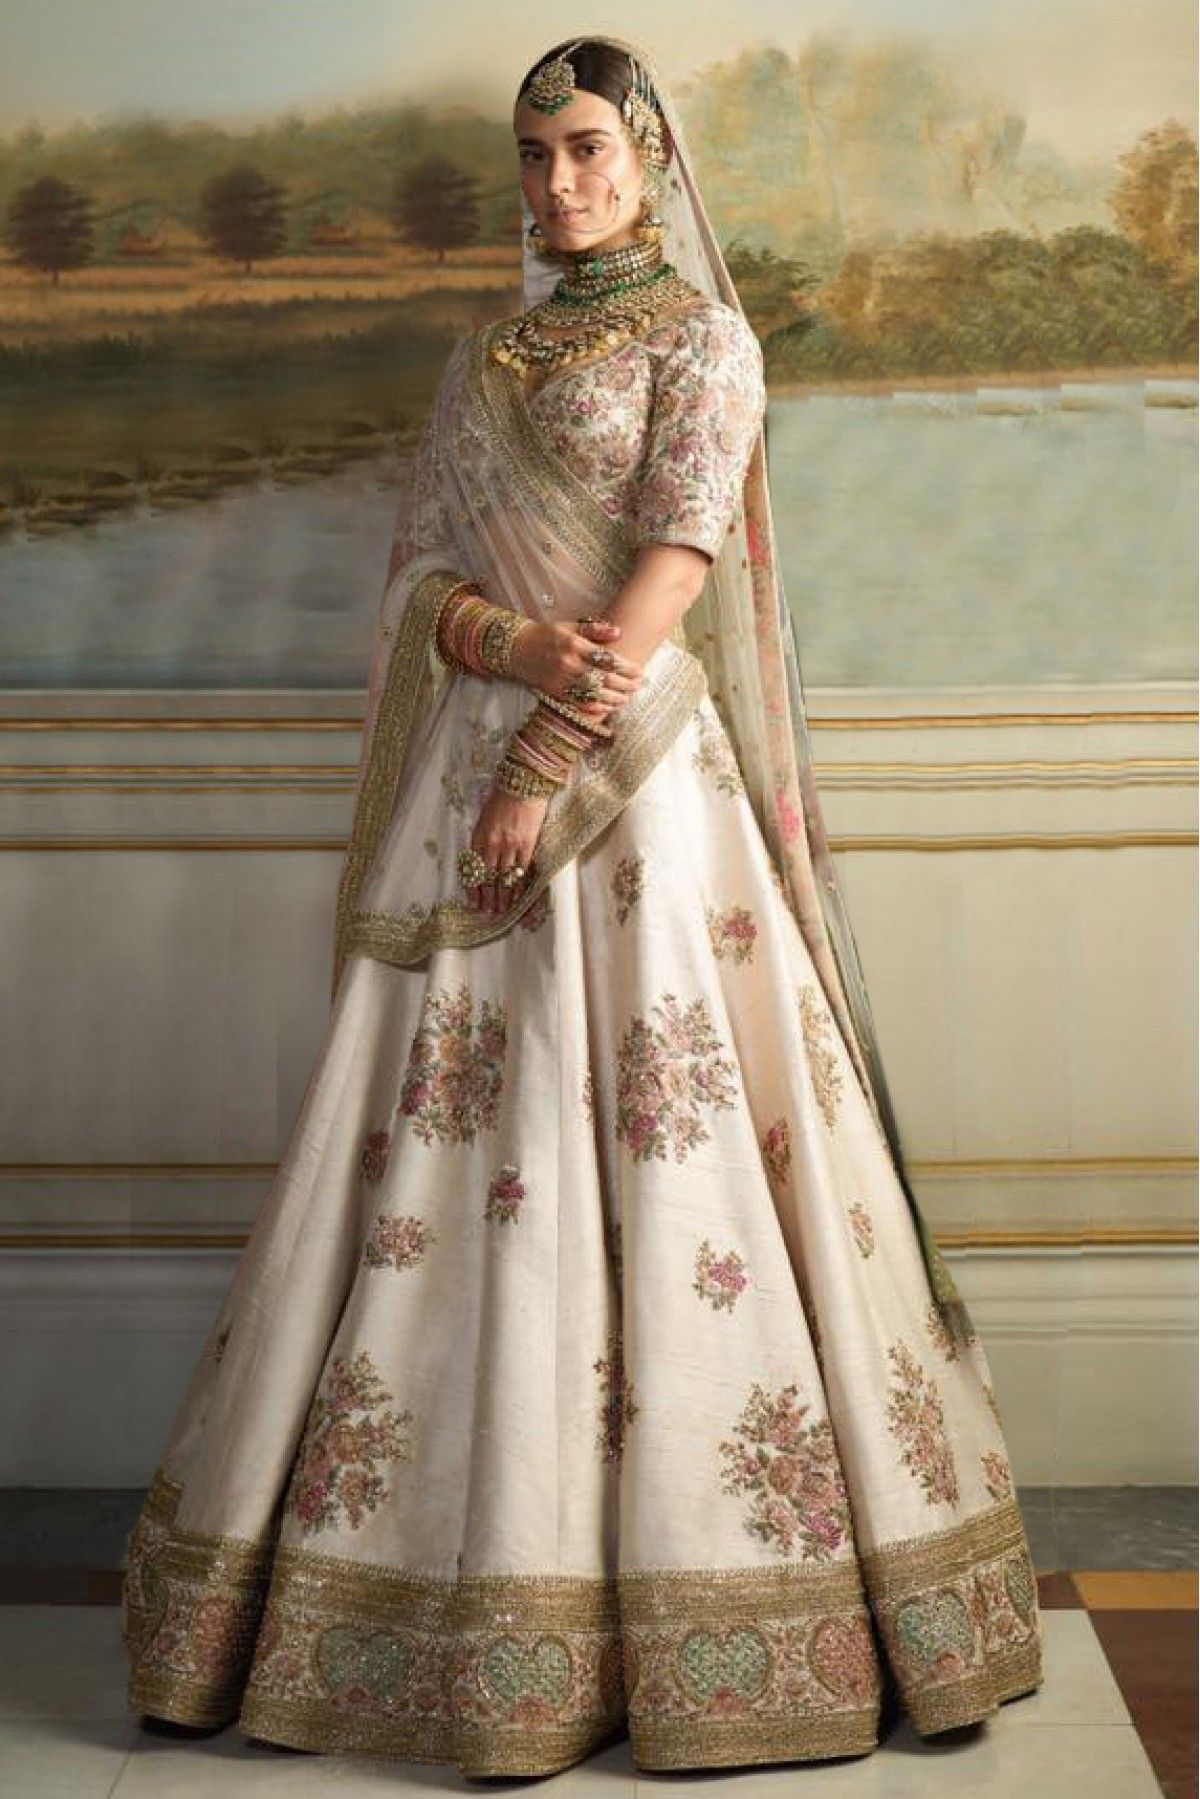 891252f44 Buy Silk Lehenag Choli In Cream Colour @ ninecolours.com. Customize  Tailoring available!